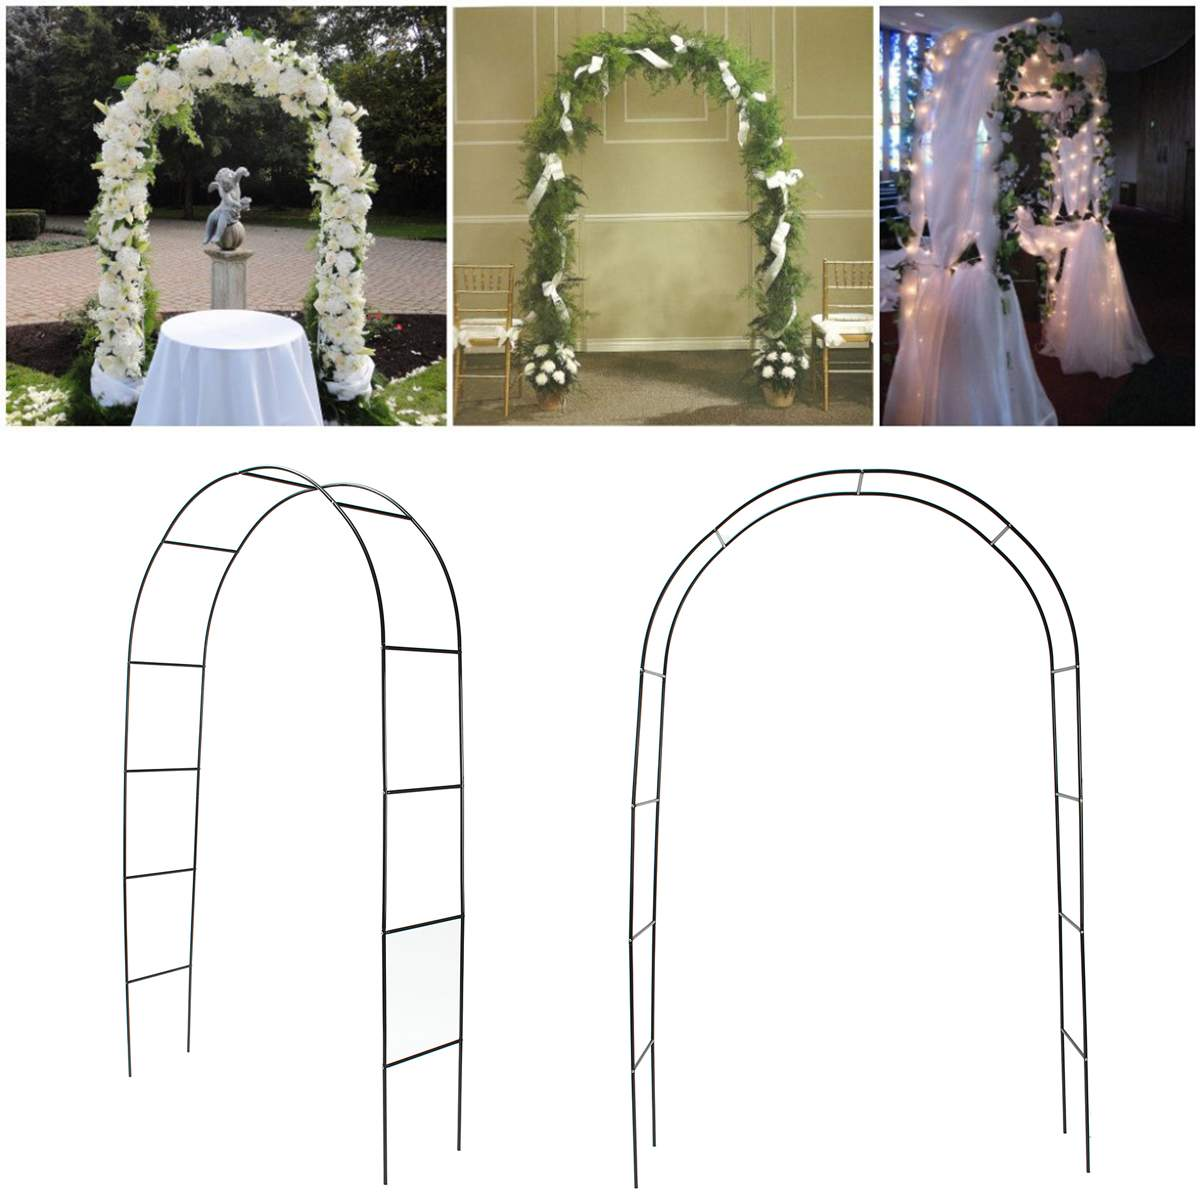 Wedding Arch Decorative Garden Backdrop Pergola Iron Stand Flower Frame For Marriage birthday wedding Party Decoration DIY Arch|Wedding Arches|   - AliExpress